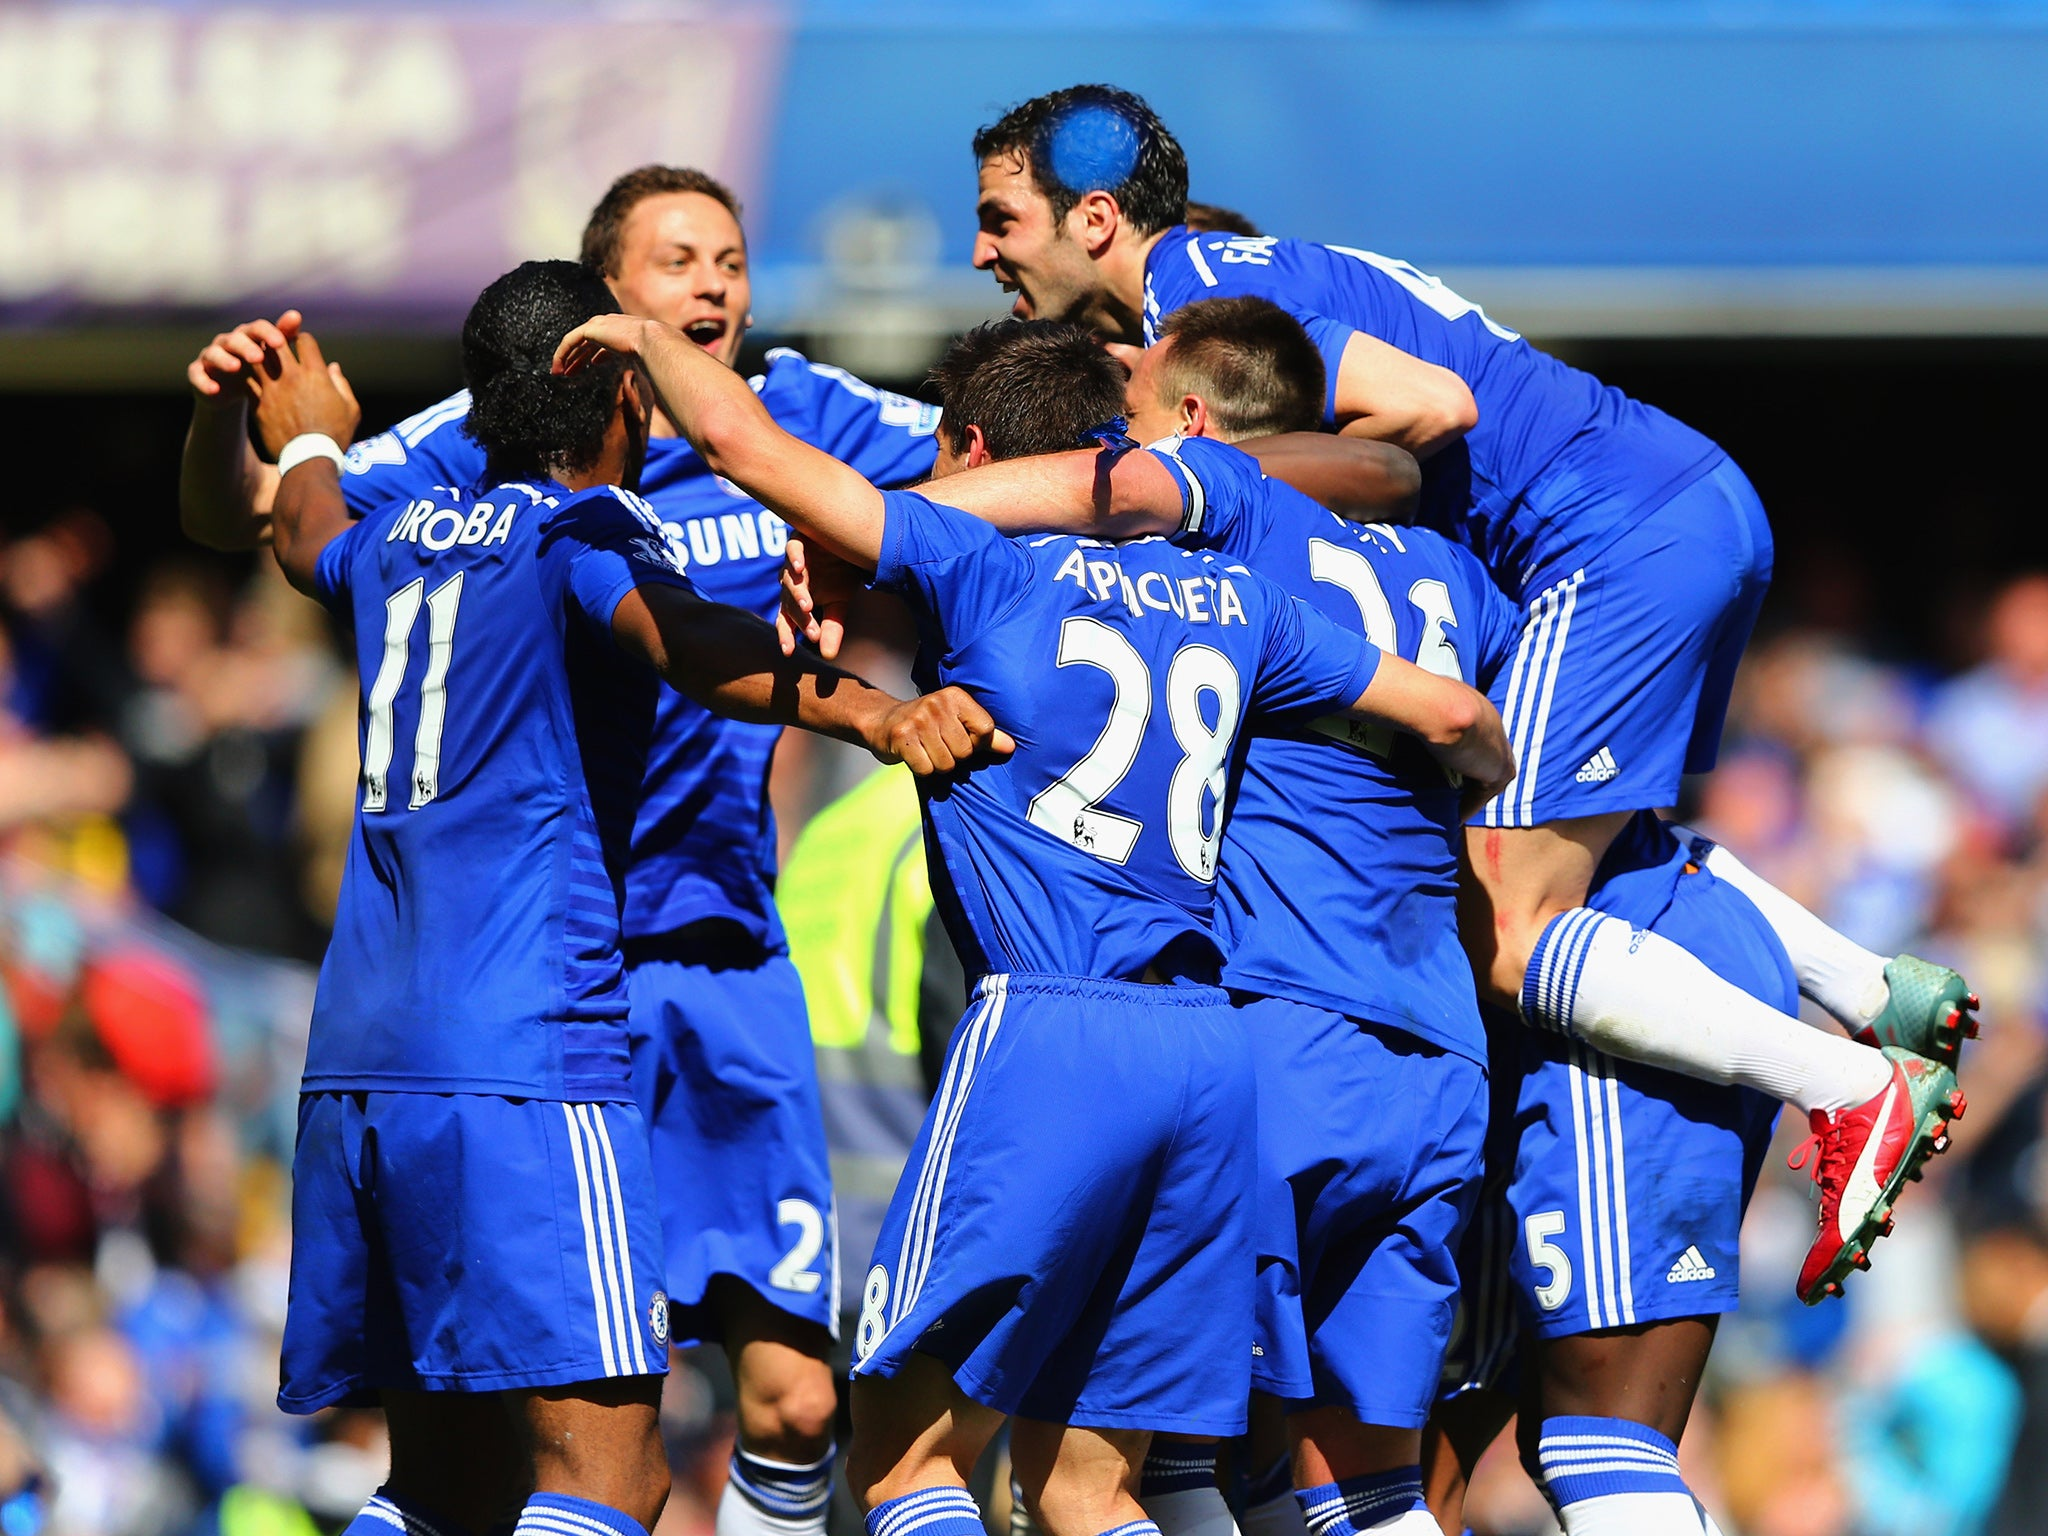 Chelsea Season Player Ratings Grading The Entire Squad Of New Premier League Champions